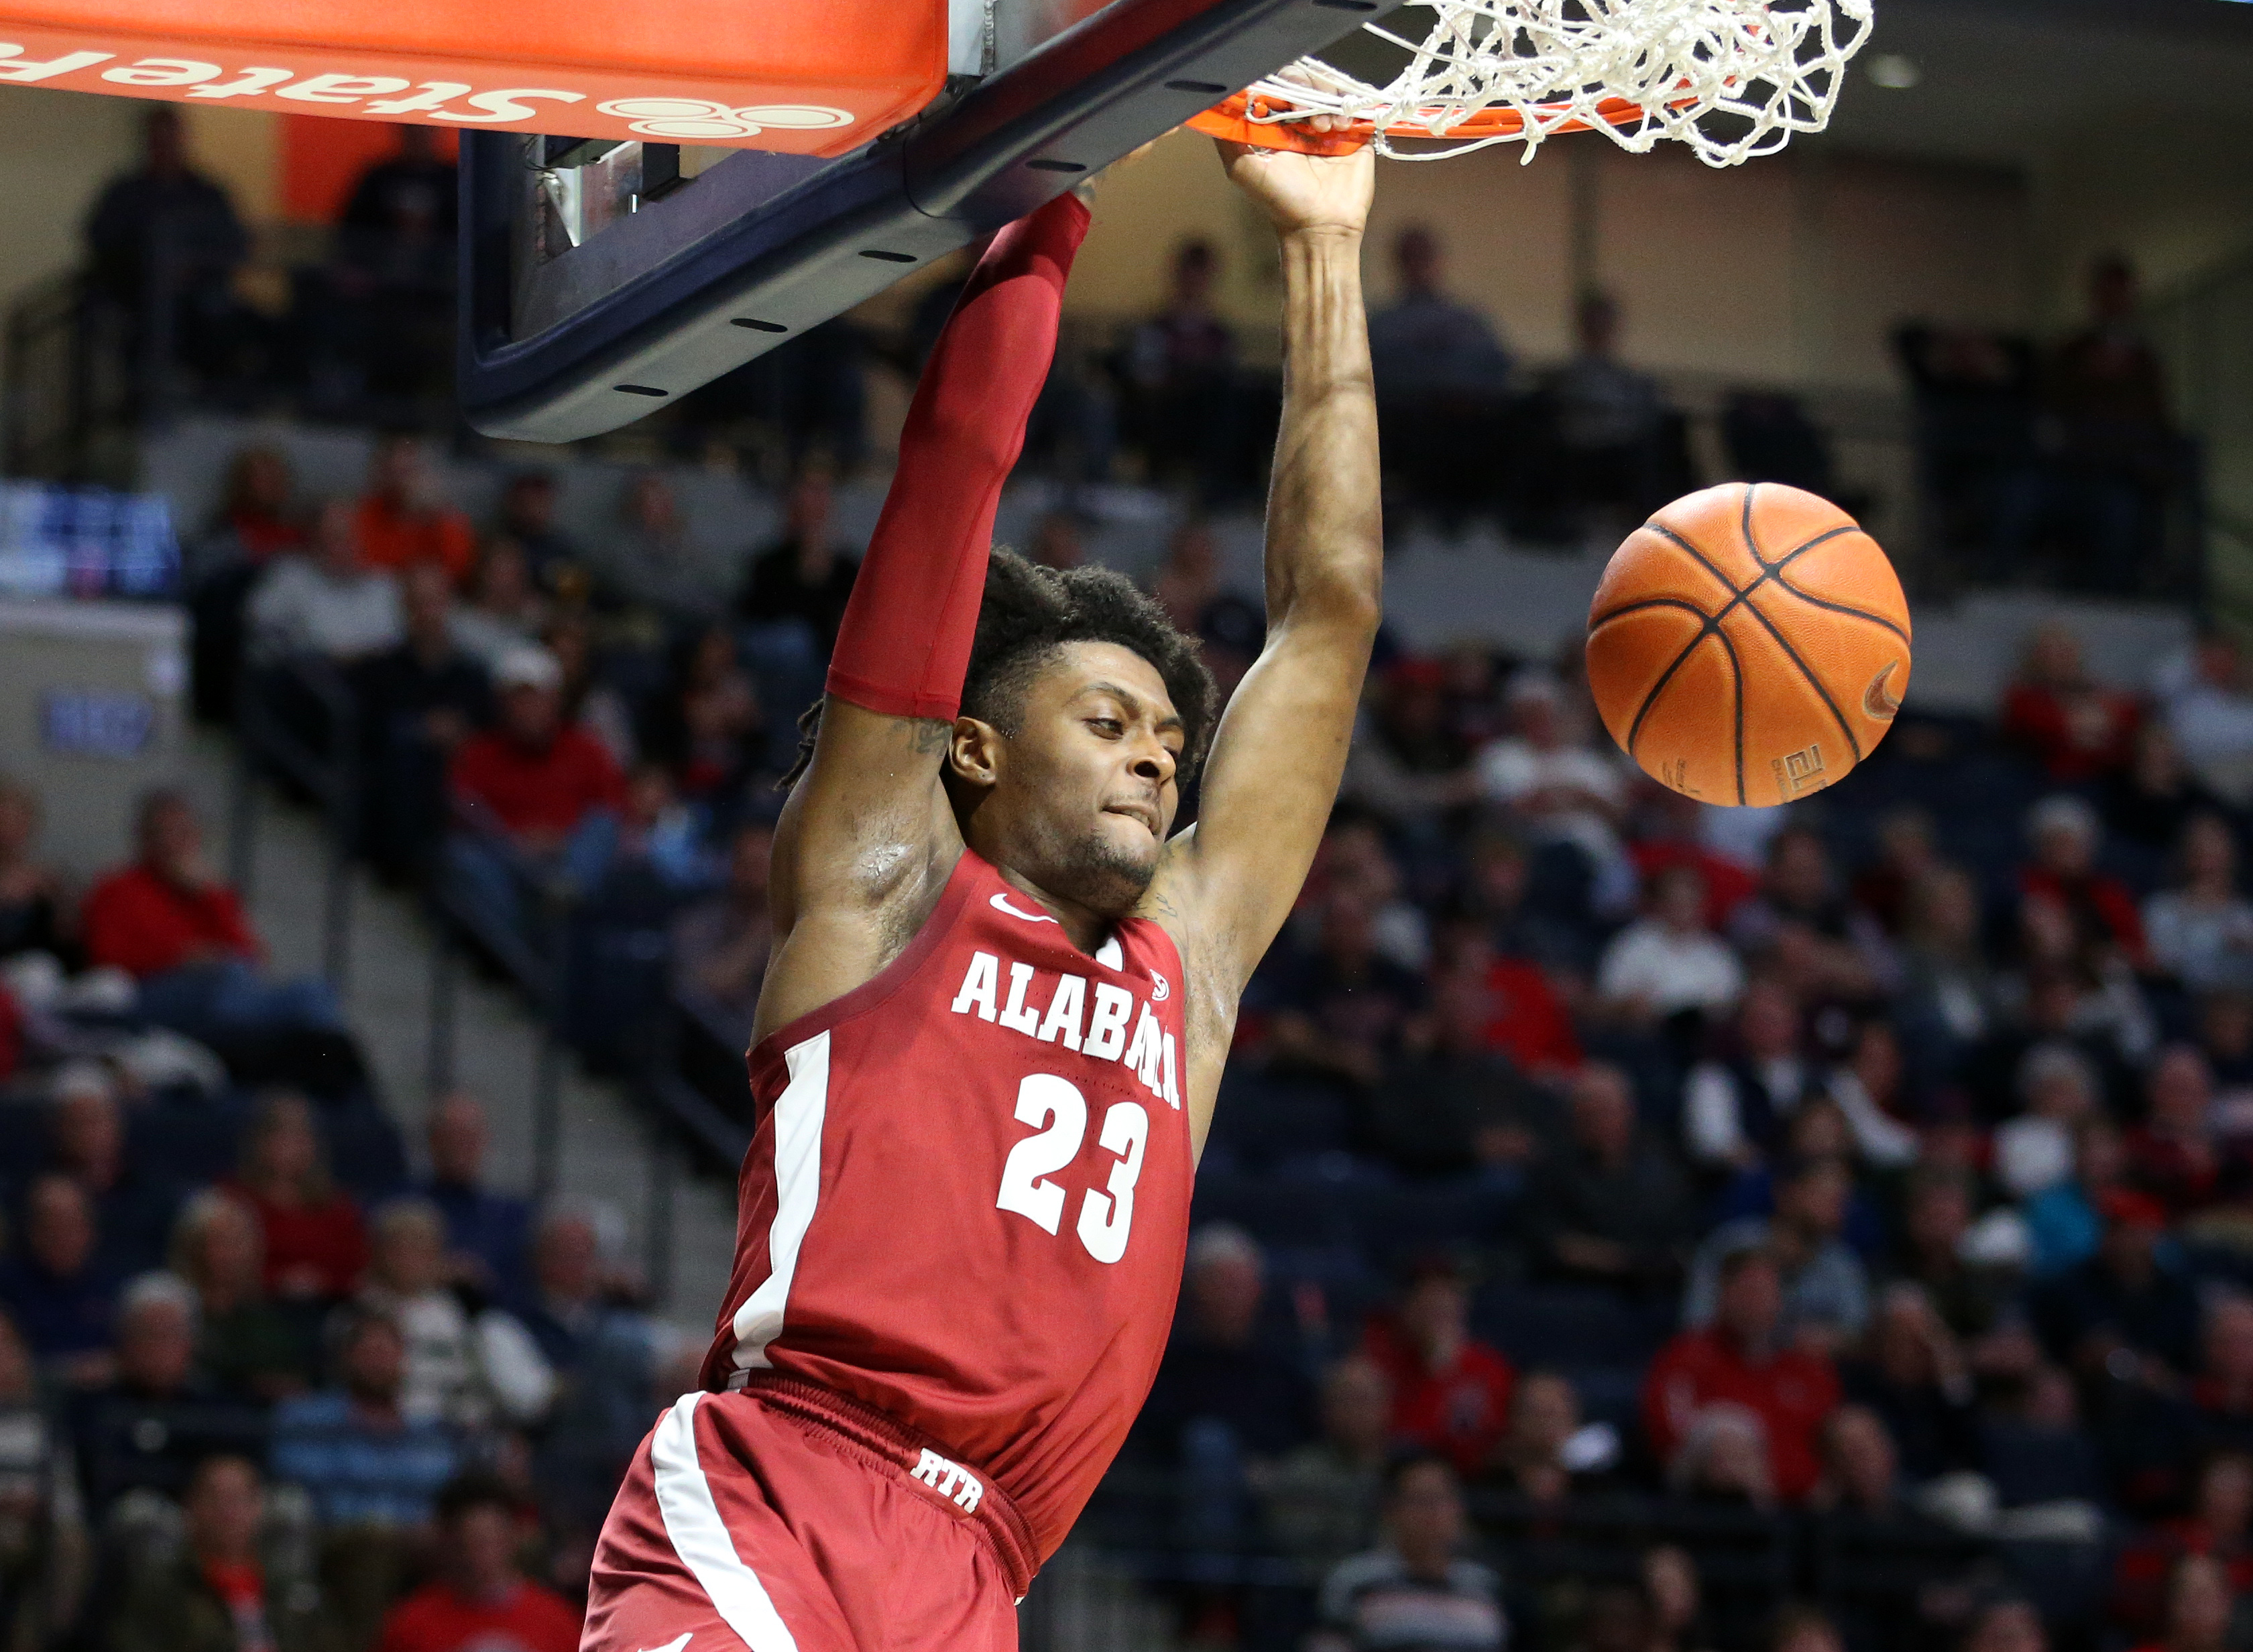 Feb 22, 2020; Oxford, Mississippi, USA; Alabama Crimson Tide guard John Petty Jr. (23) dunks during the first half against the Mississippi Rebels at The Pavilion at Ole Miss. Mandatory Credit: